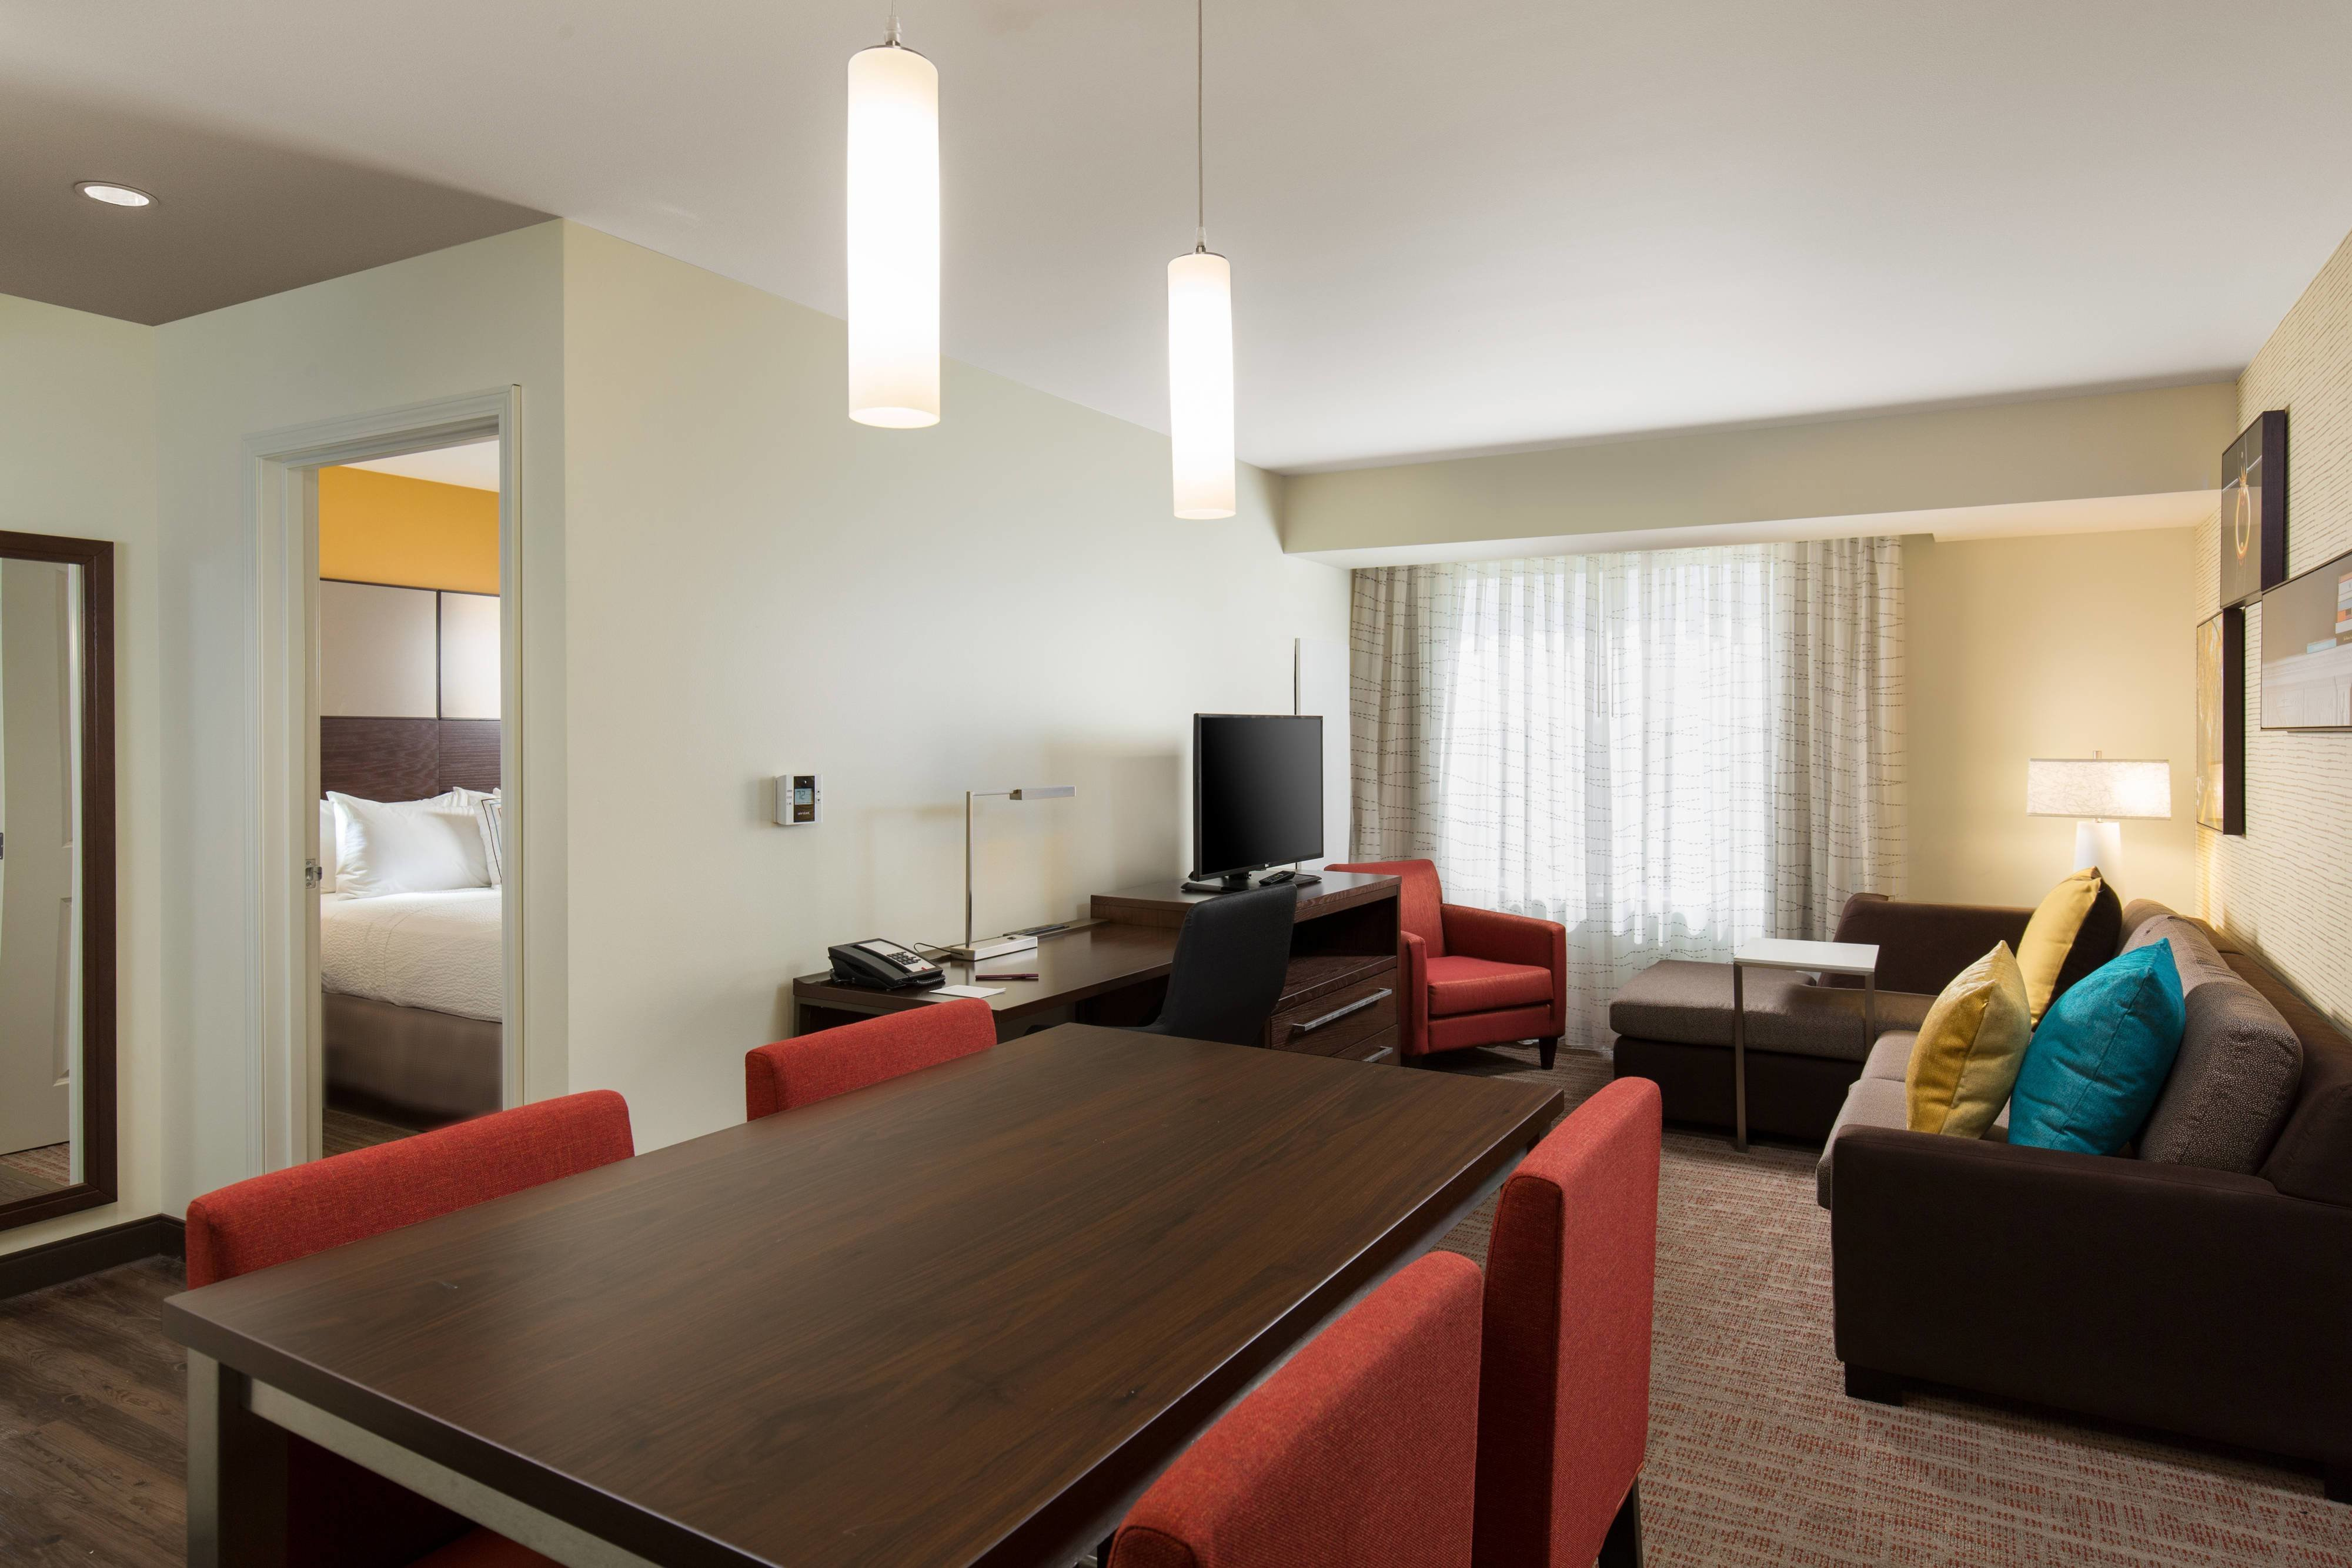 Best Hotel Rooms Amenities Residence Inn Denver Stapleton With Pictures